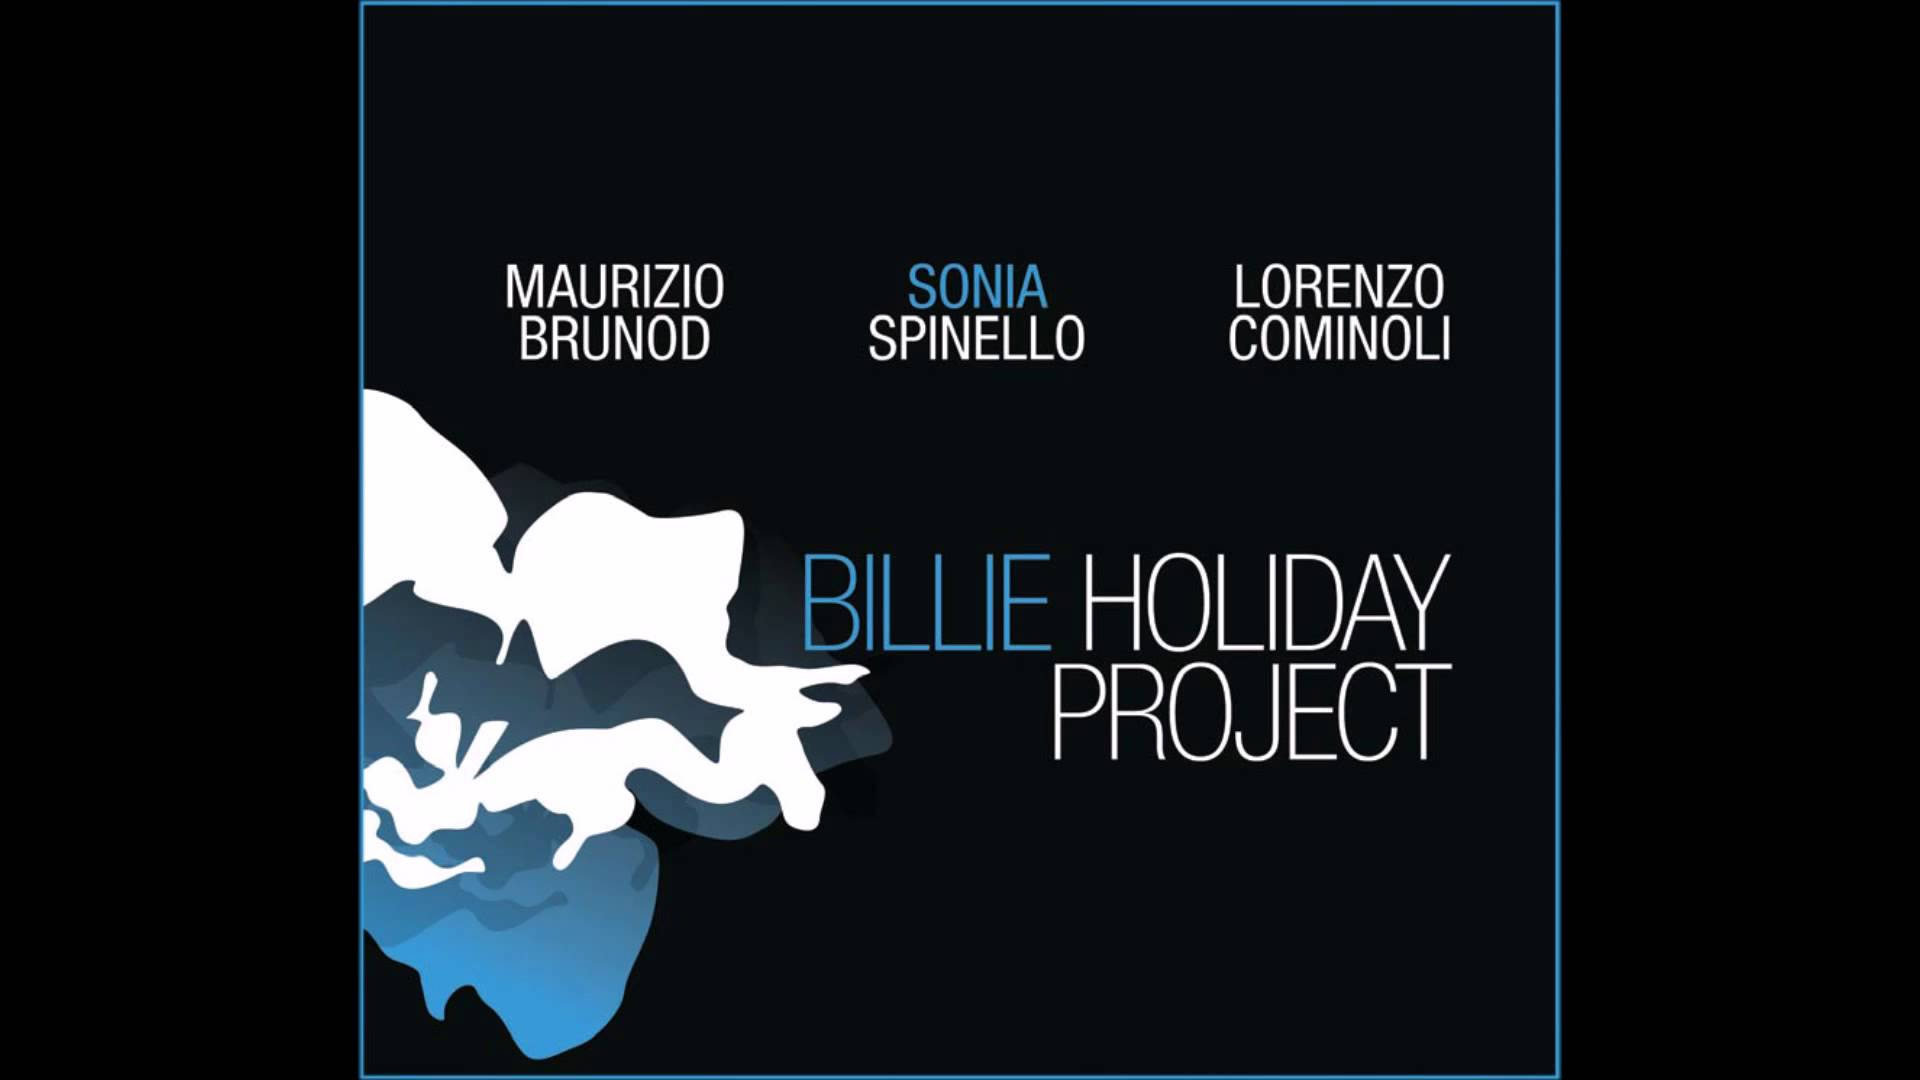 Billie Holiday project